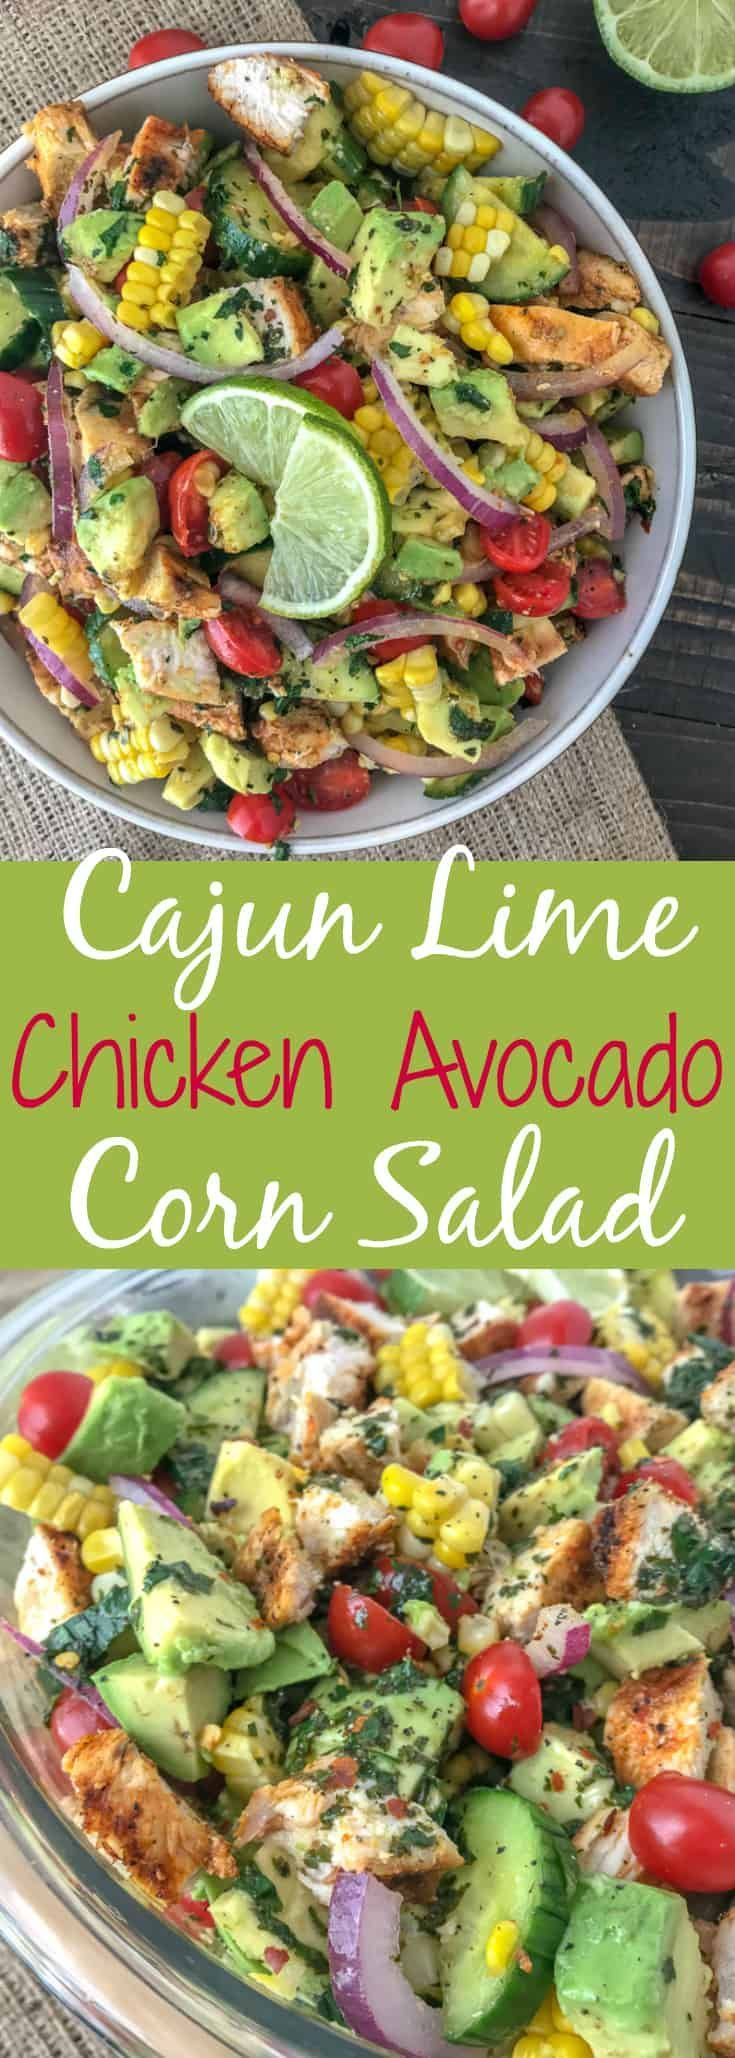 Cajun Lime Chicken Avocado Corn Salad images